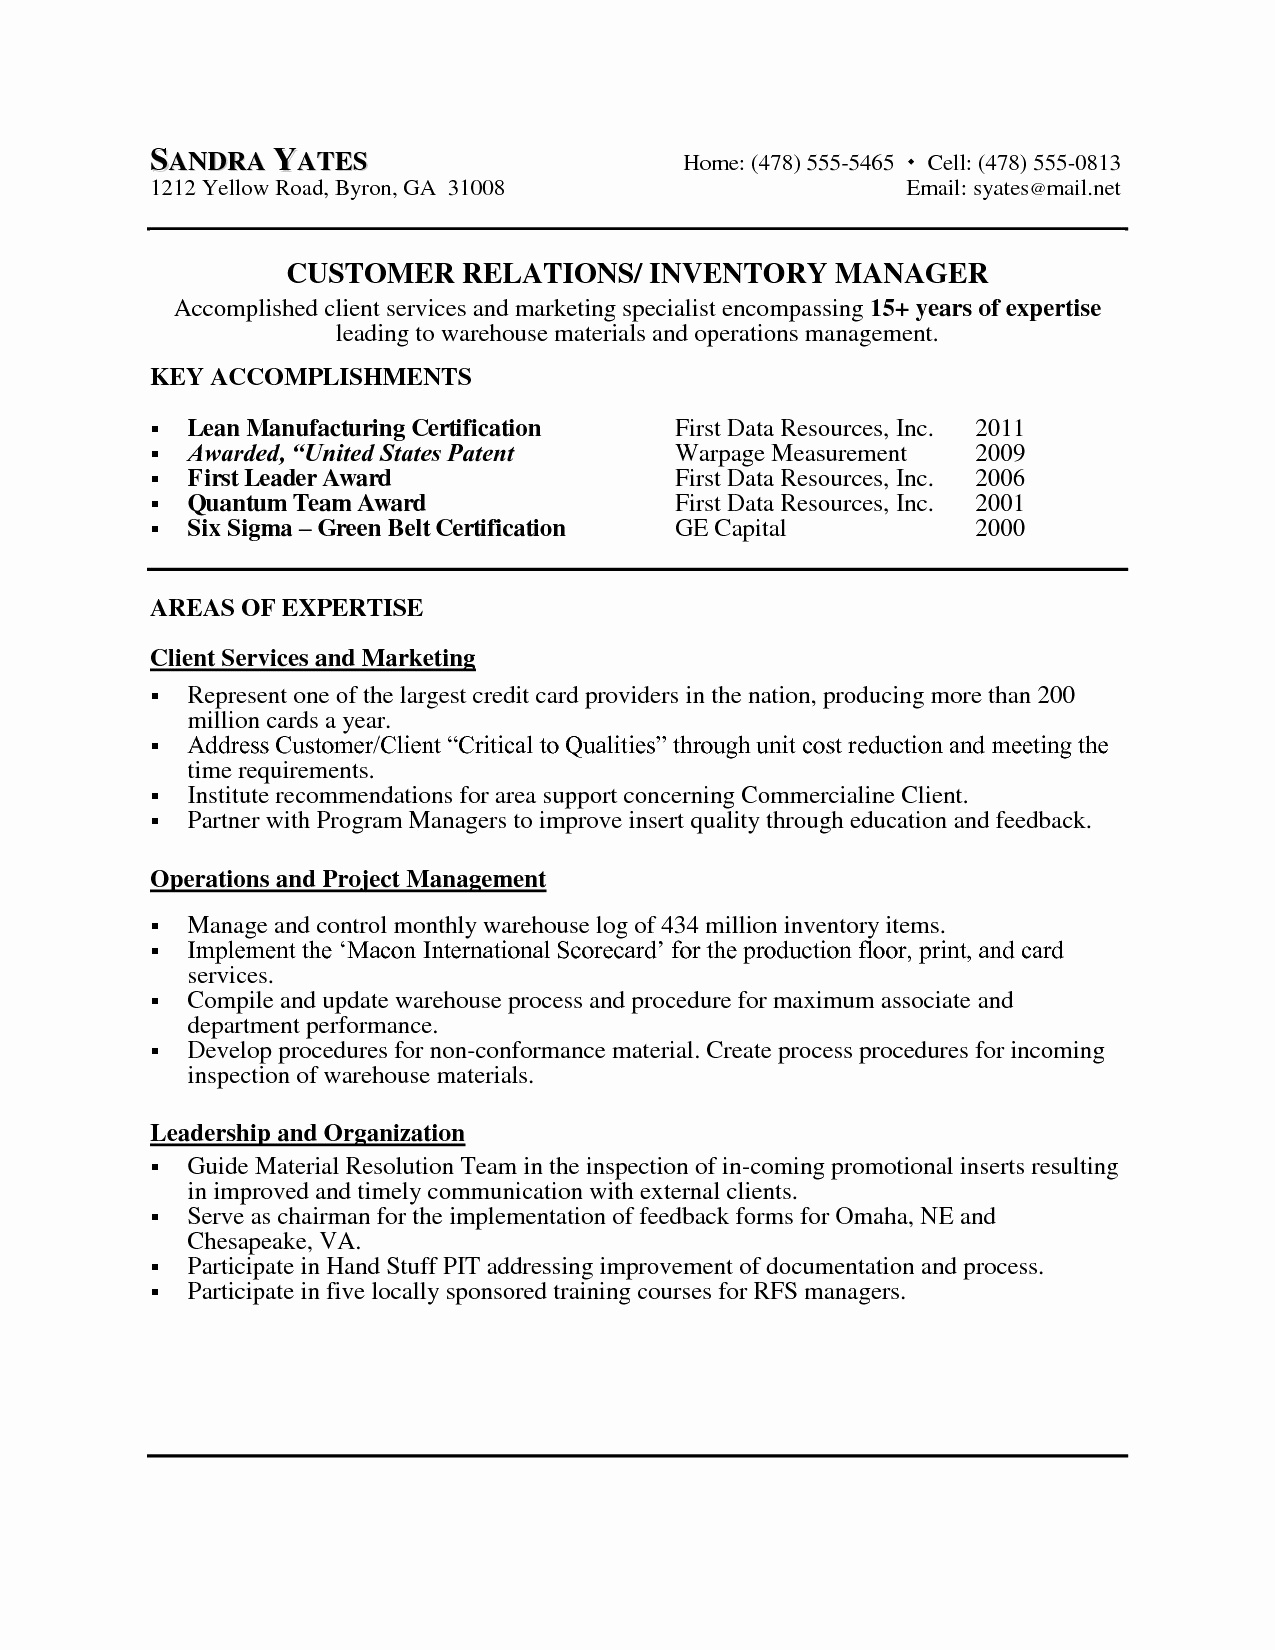 Restaurant Manager Resume Examples - Account Manager Resume Objective Examples New 20 Property Manager